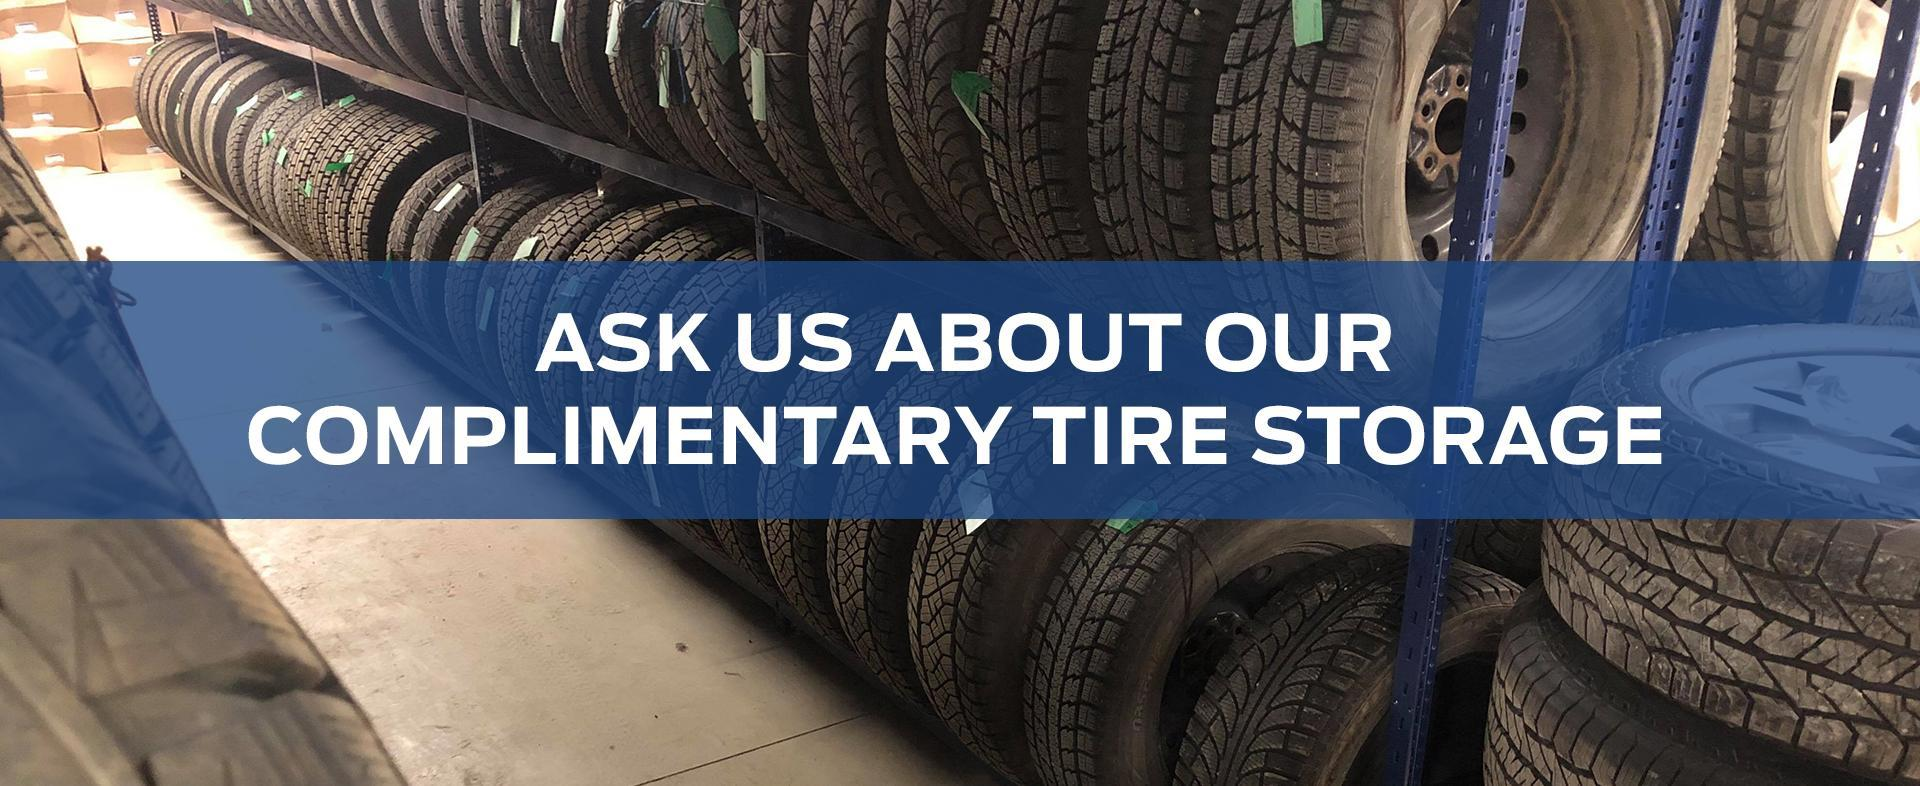 Complimentary Tire Storage at Norris Ford